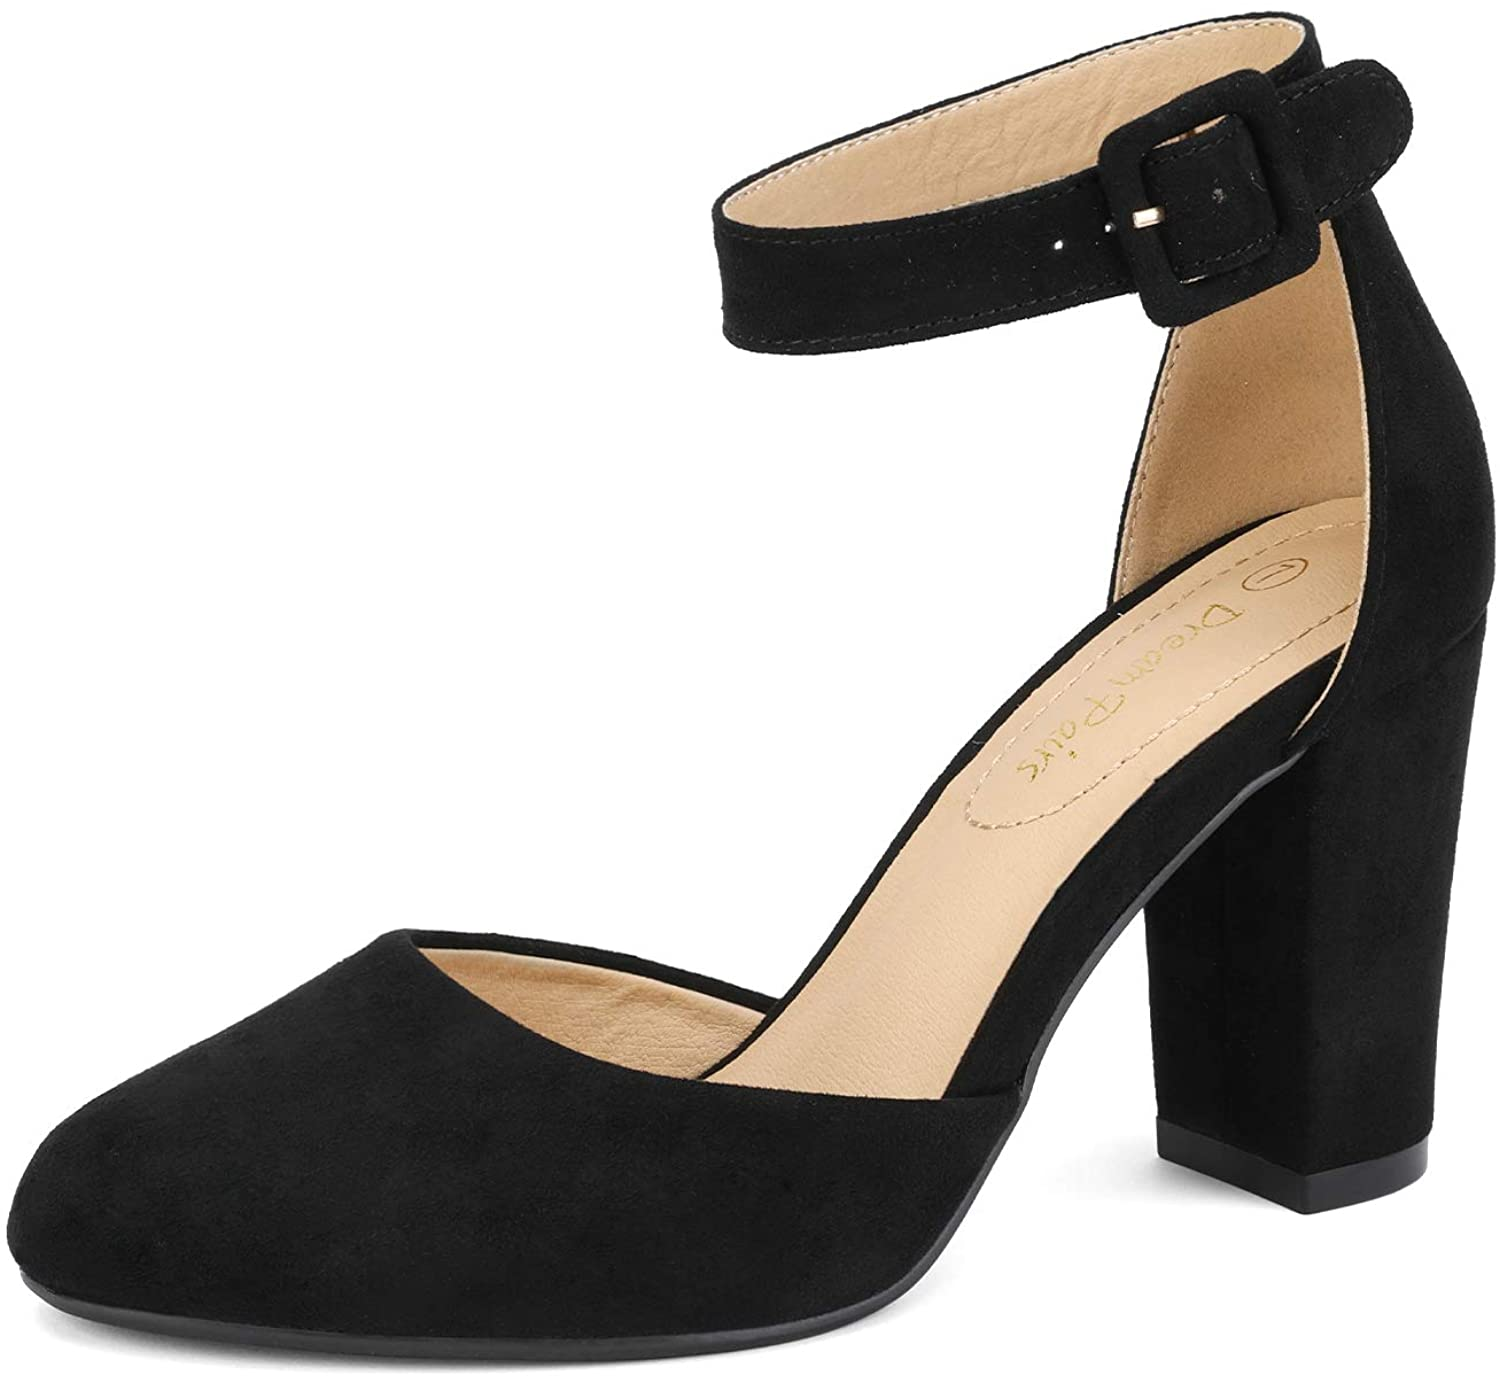 DREAM PAIRS Women's High Super sale period limited Time sale Heel Closed Sh Toe Chunky Pumps Wedding